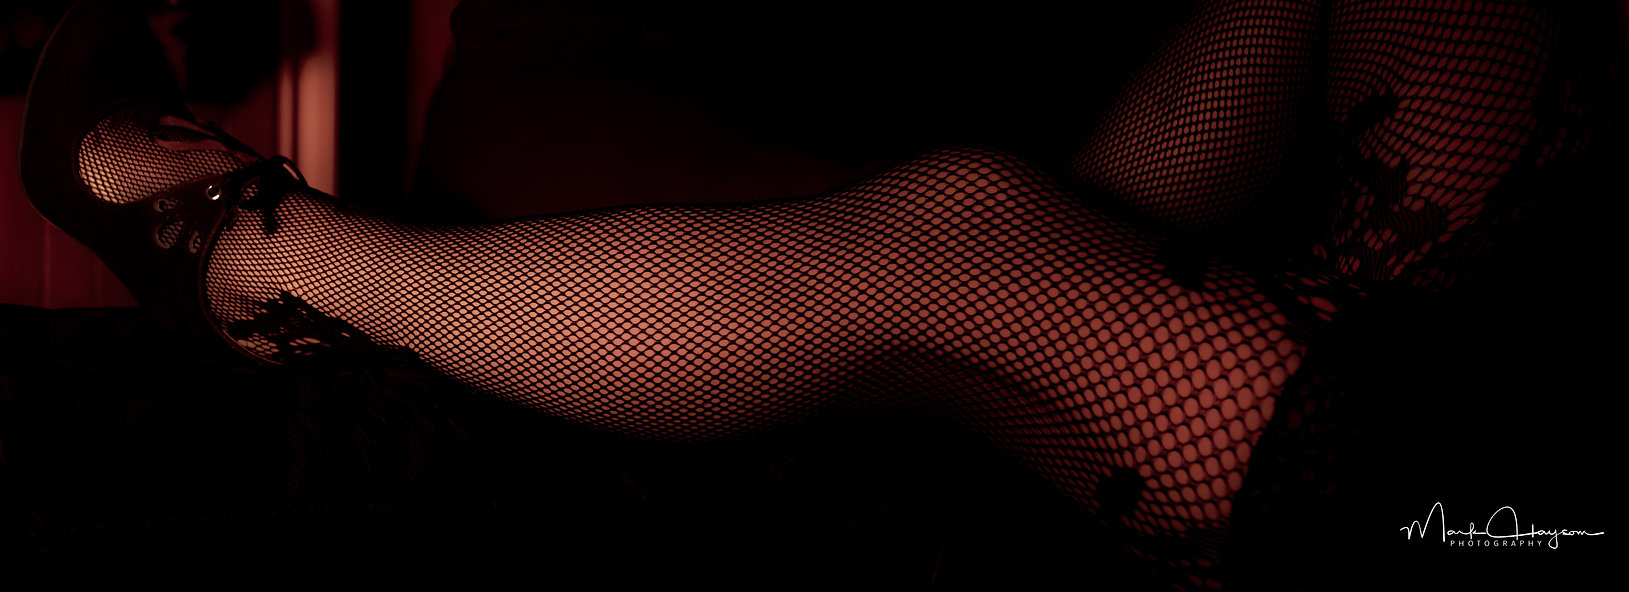 Women with fishnet stockings and little black dress on a couch in a dimly lit room.